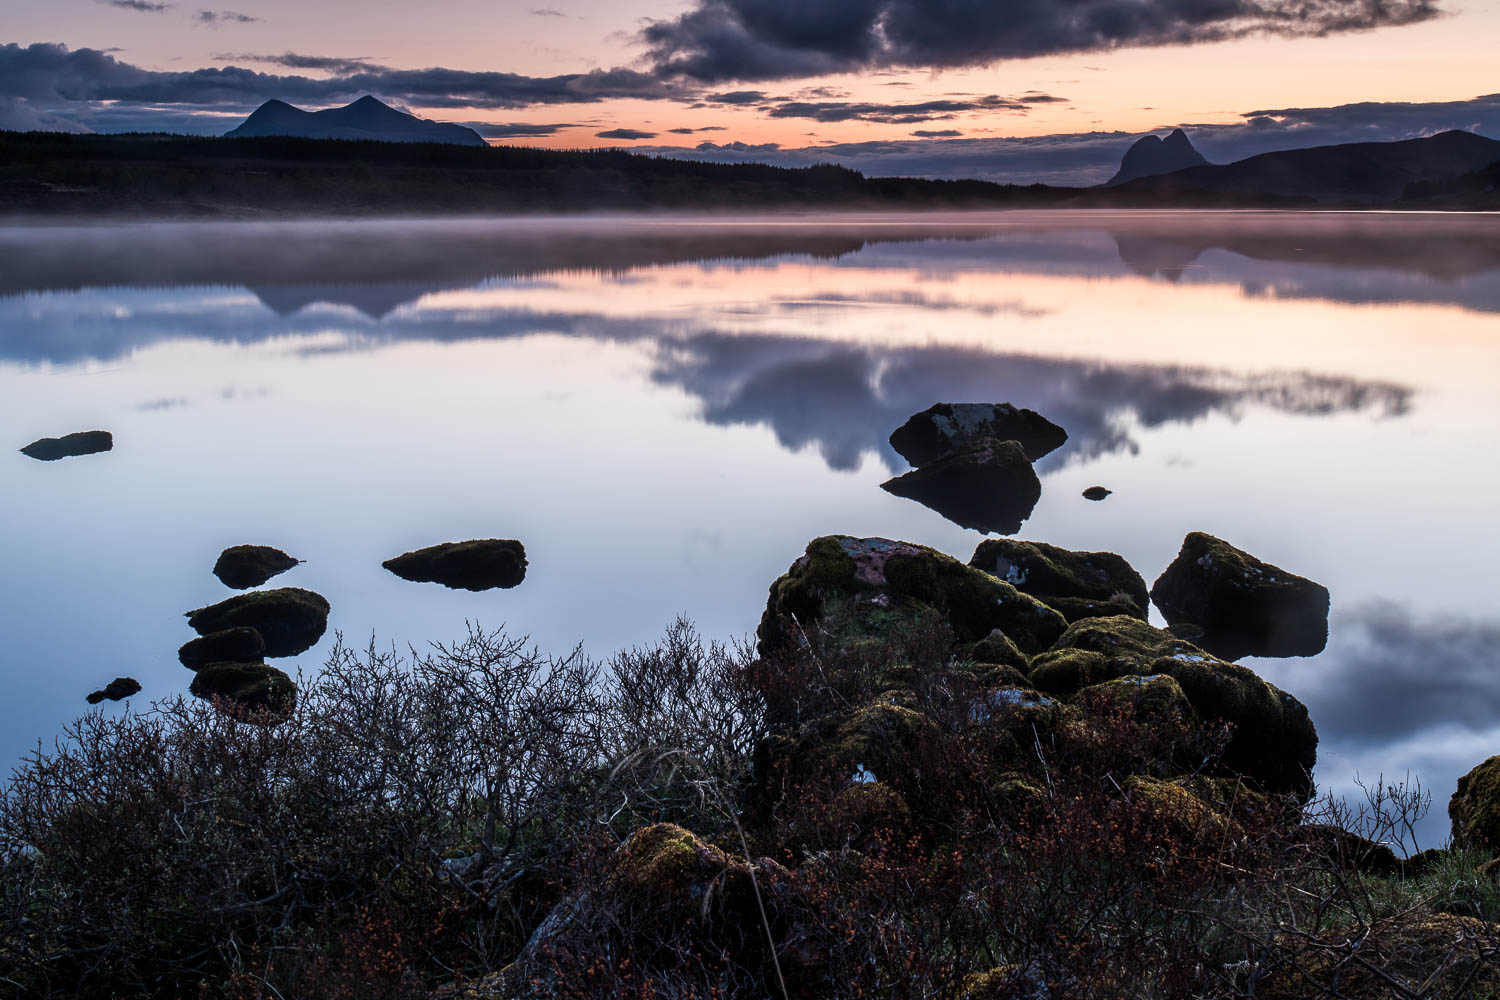 Loch Barralan with Suilven and Cùl Mor